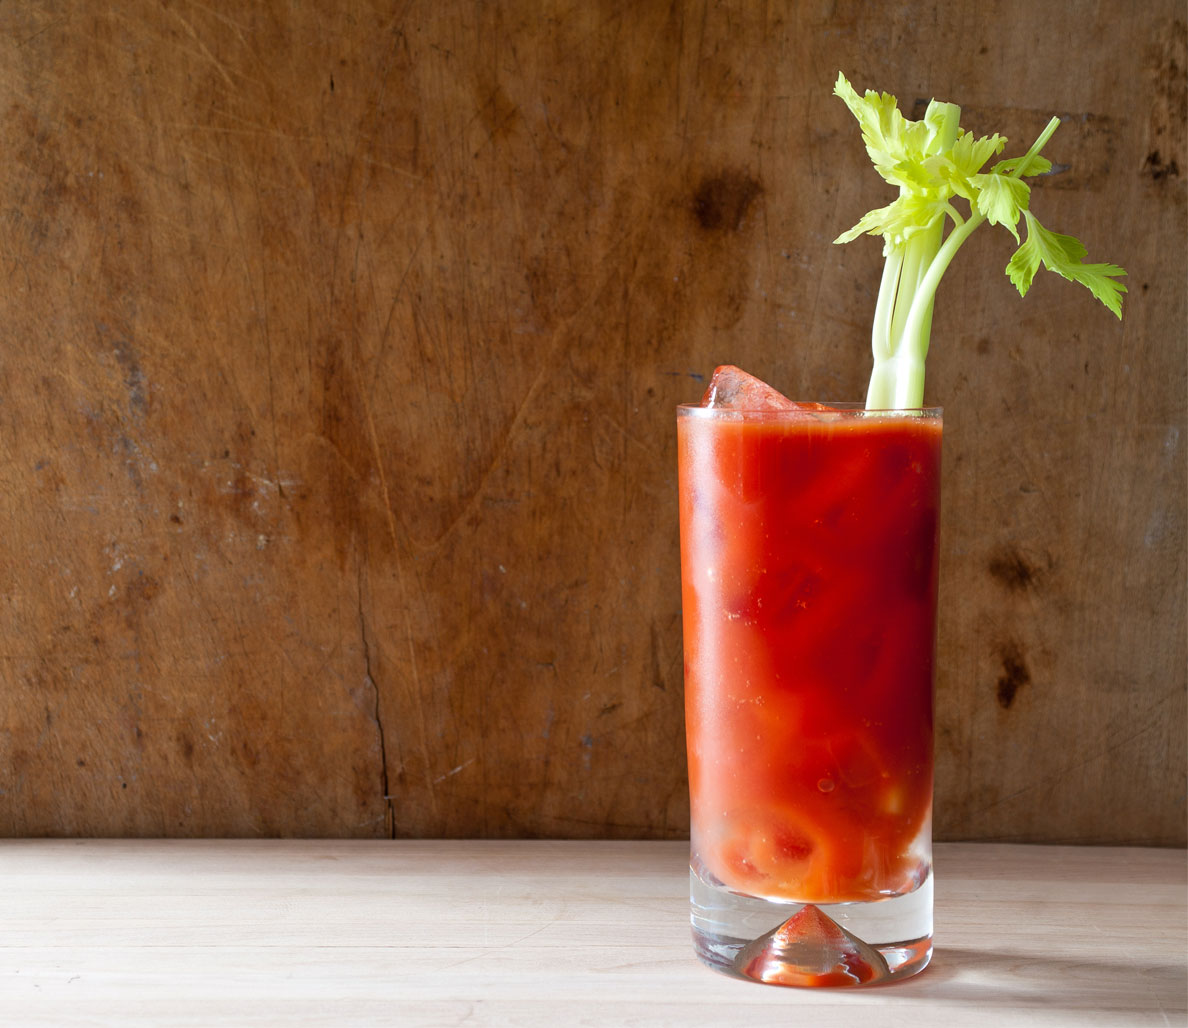 Best Bloody Mary Recipe by Chef Maneet Chauhan